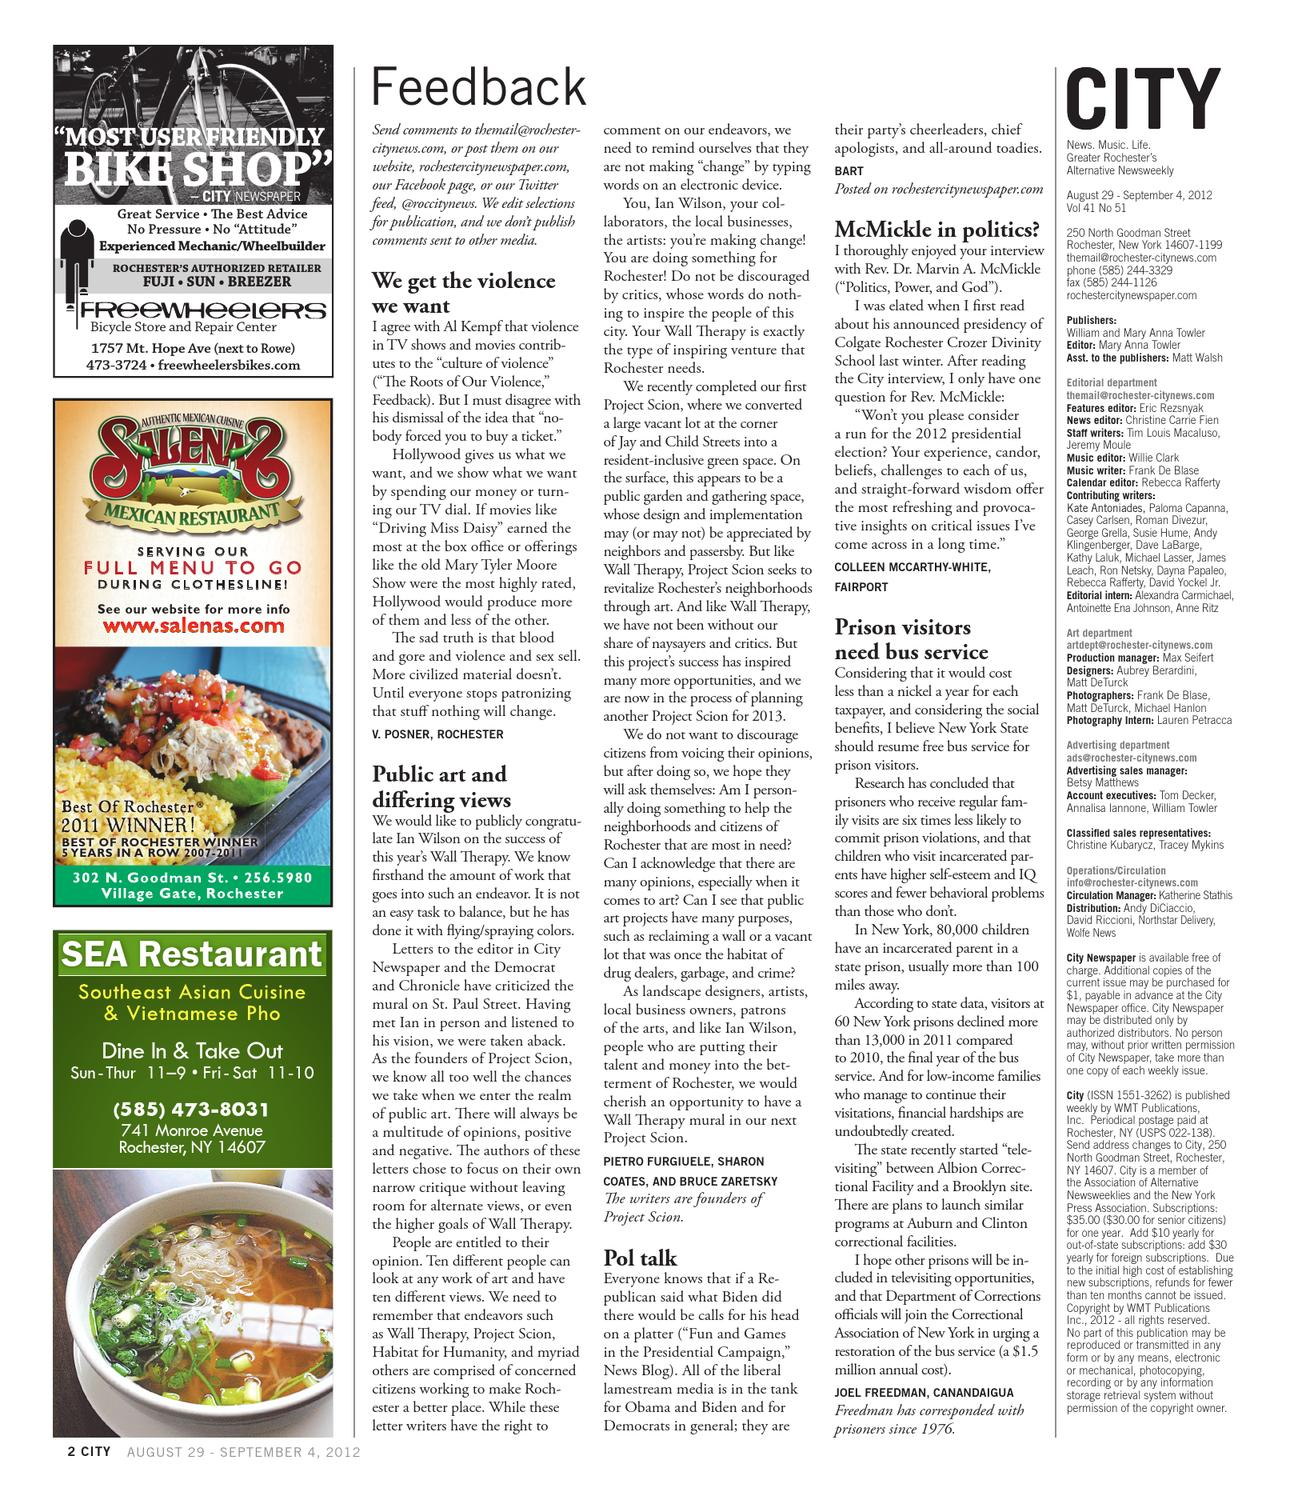 August 29 - Septmeber 4, 2012 - CITY Newspaper by Rochester